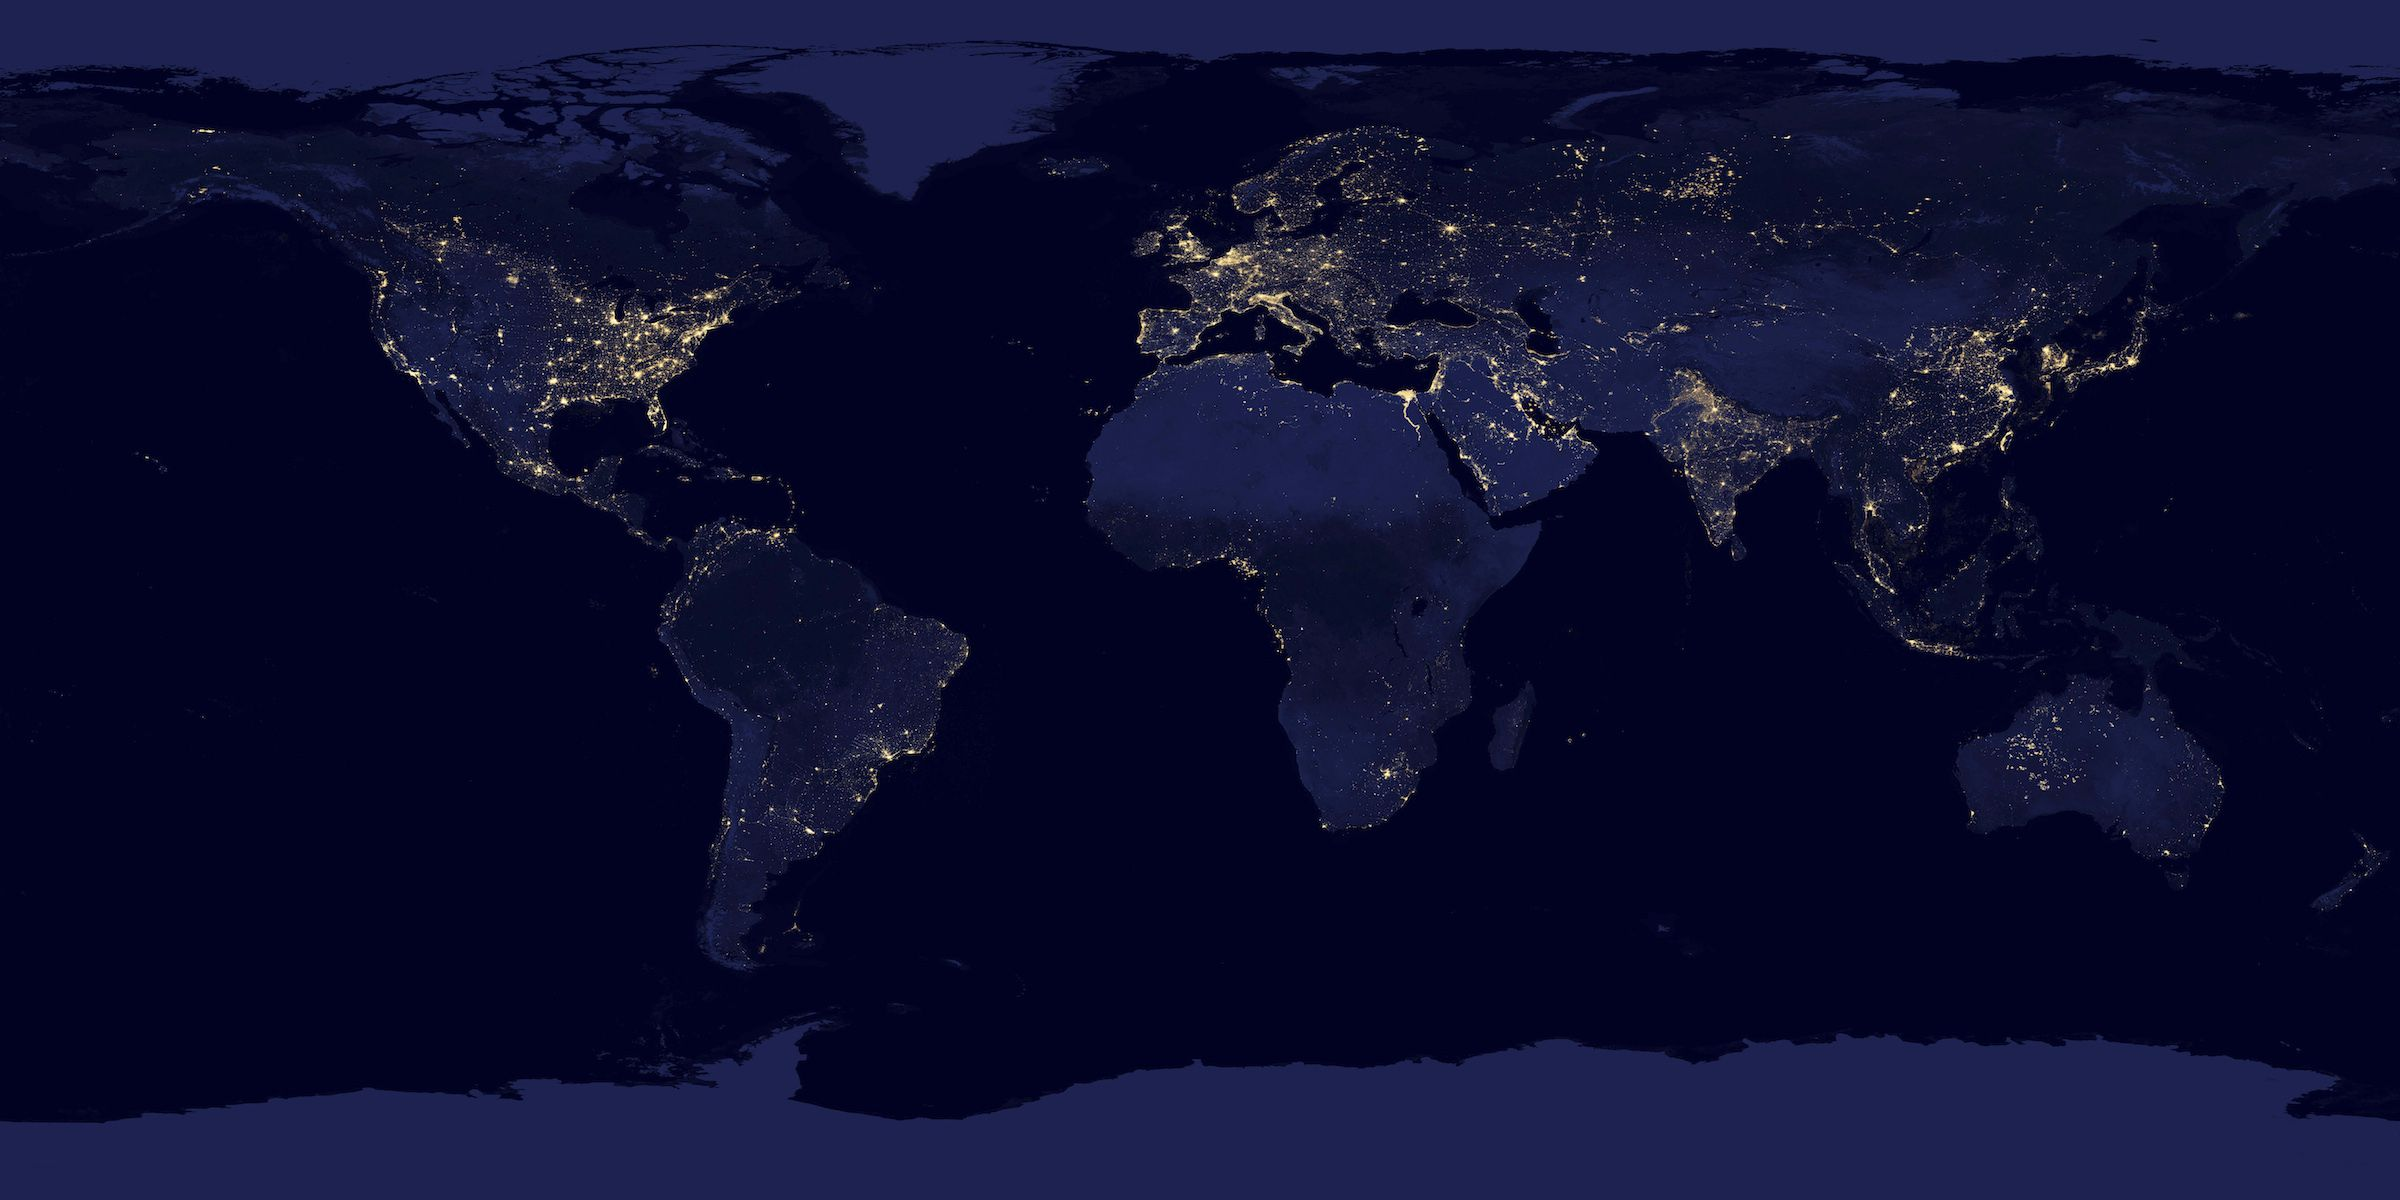 Lights across the earth are pictured in this NASA handout satellite image obtained by Reuters December 5, 2012. This new image of the Earth at night is a composite assembled from data acquired by the Suomi National Polar-orbiting Partnership (Suomi NPP) satellite over nine days in April 2012 and thirteen days in October 2012. It took 312 orbits and 2.5 terabytes of data to get a clear shot of every parcel of Earth's land surface and islands.